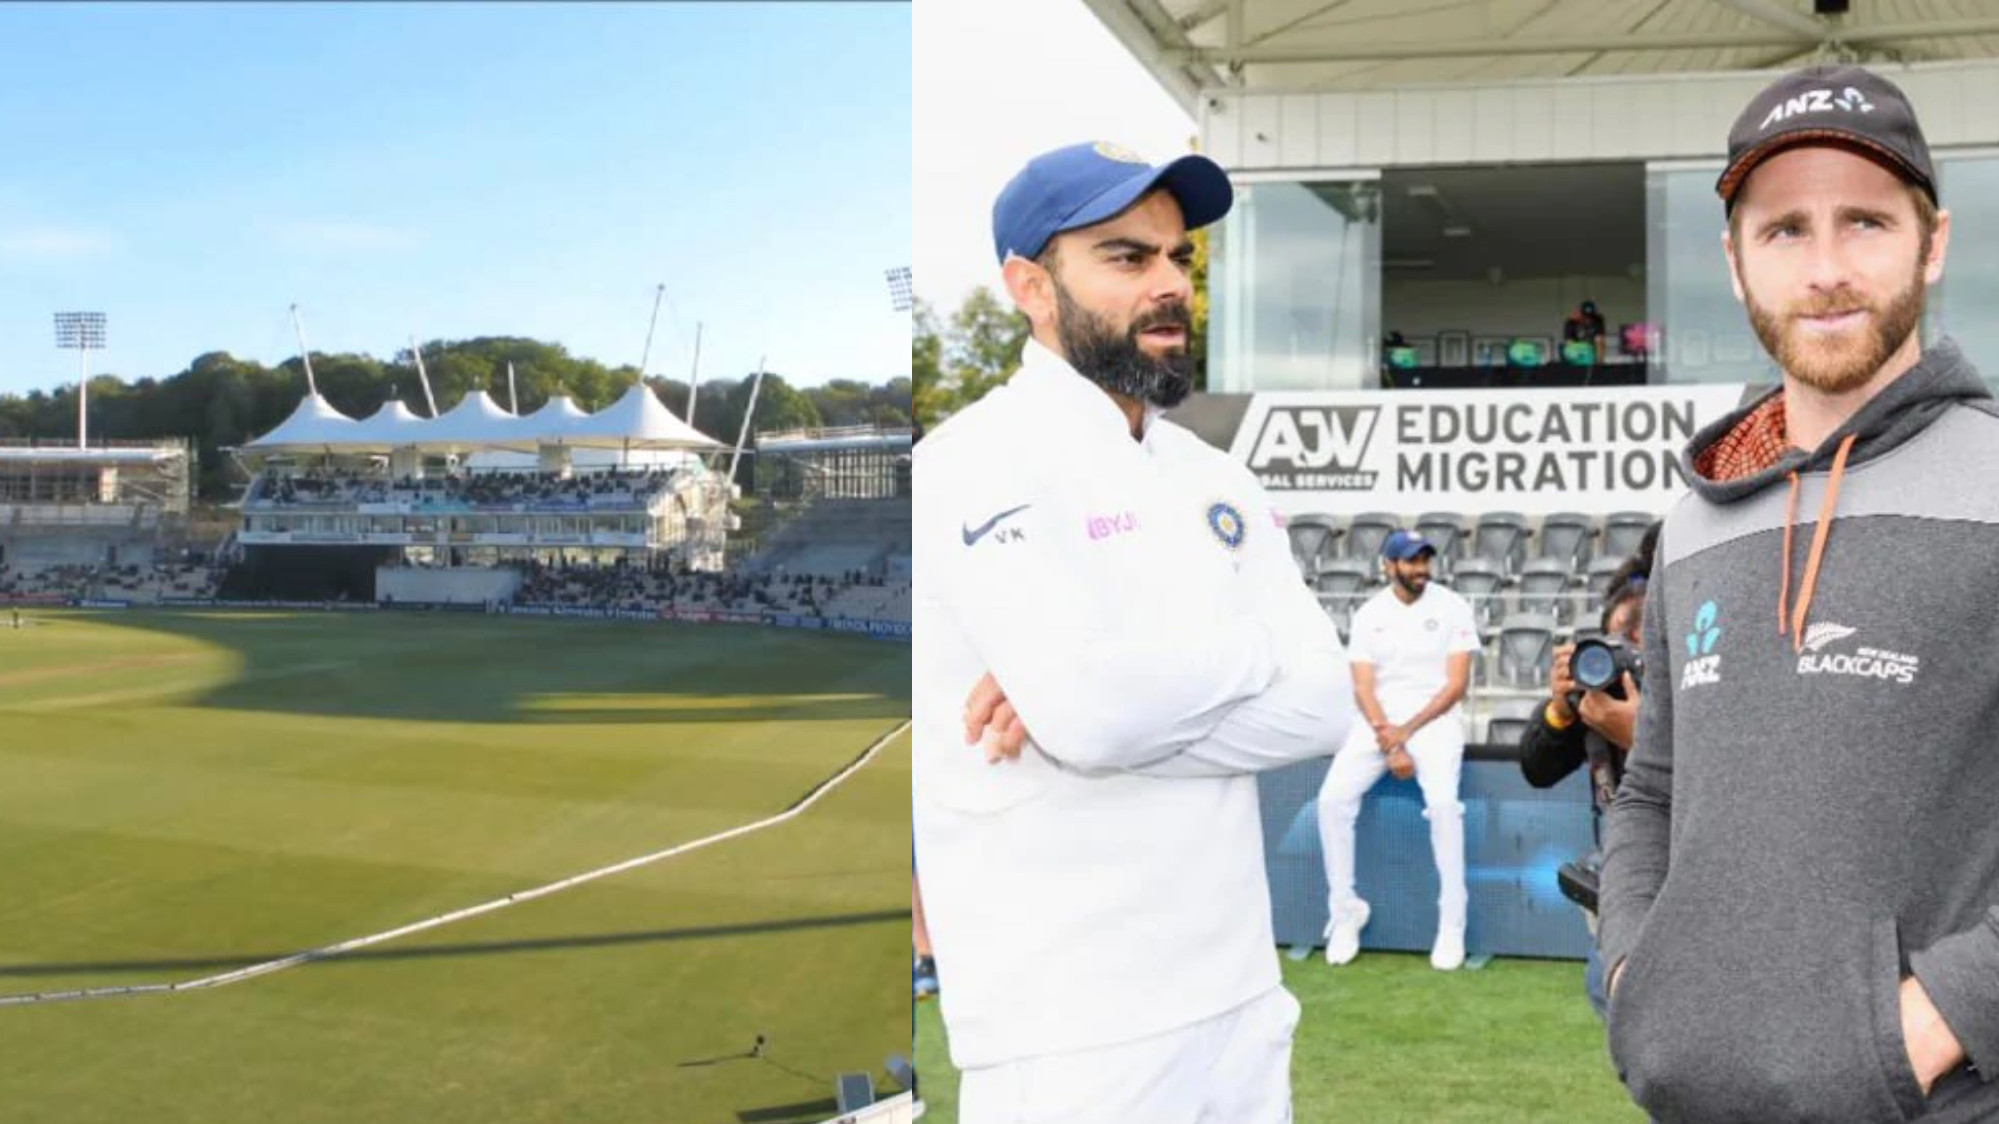 ICC confirms Southampton as the venue for the final of 2021 World Test Championship